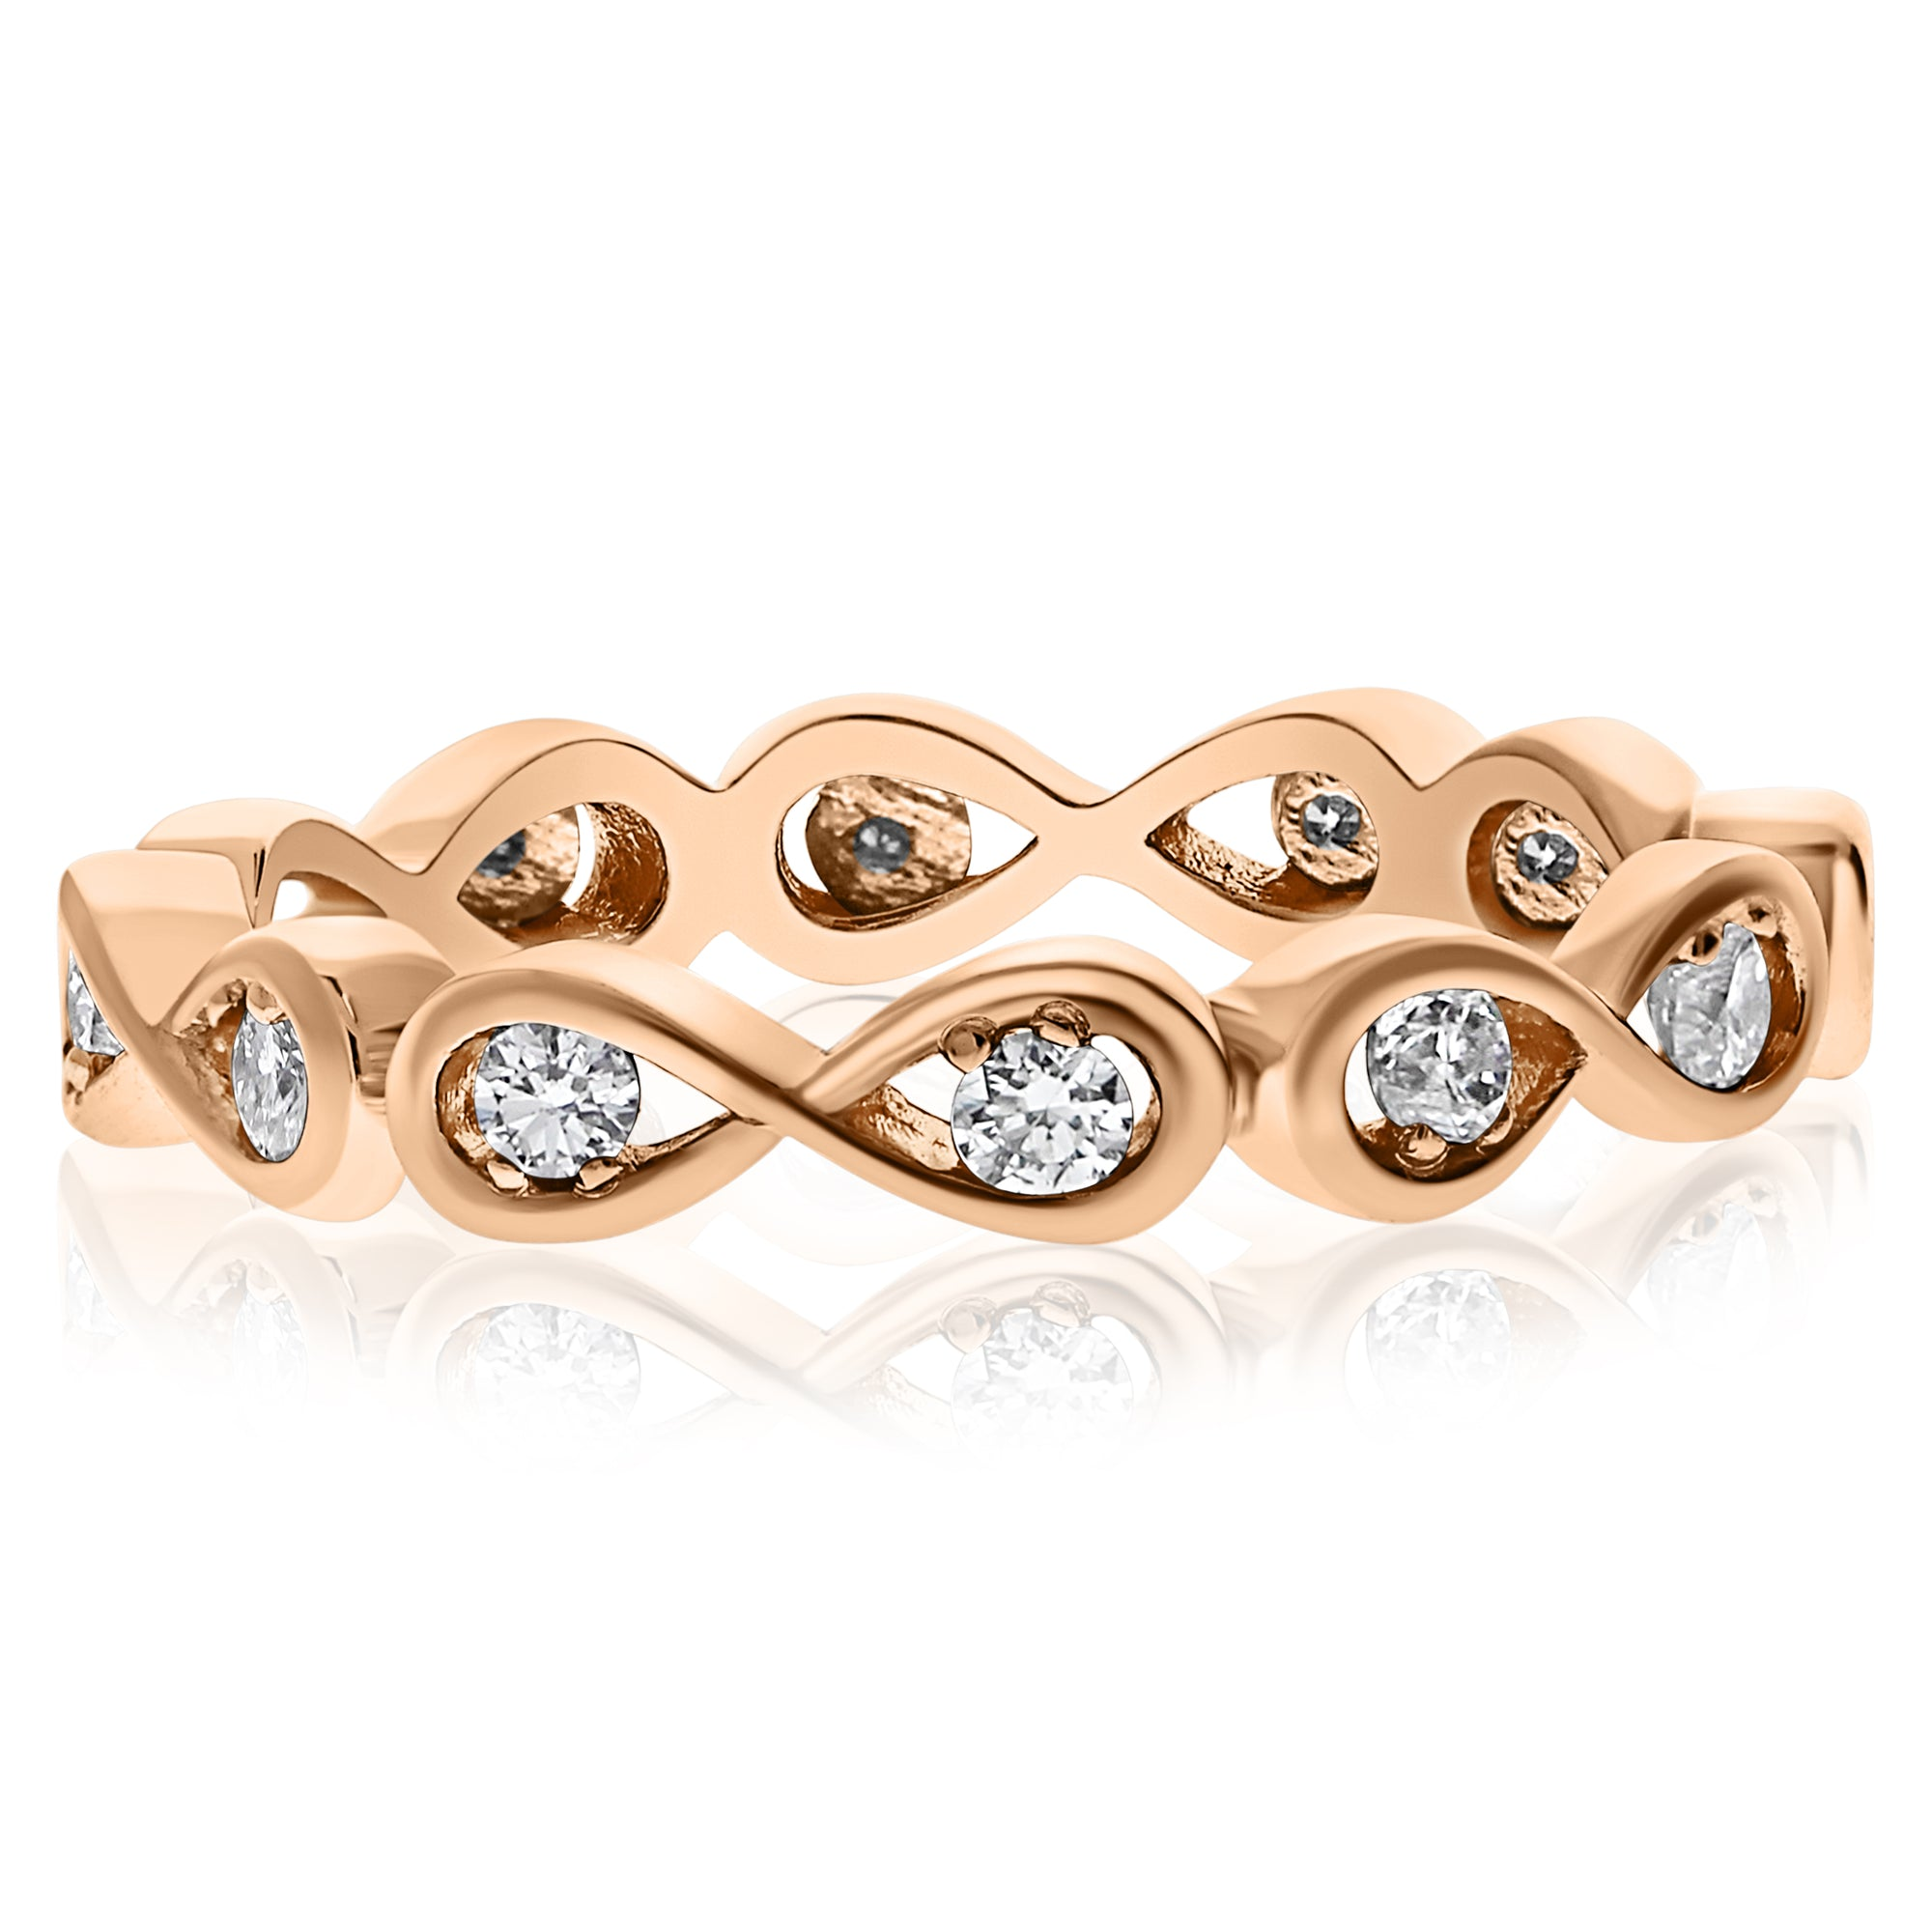 him of sets ideas styles and her wedding bands stunning infinity band lovely amp rings for gold contemporary elegant